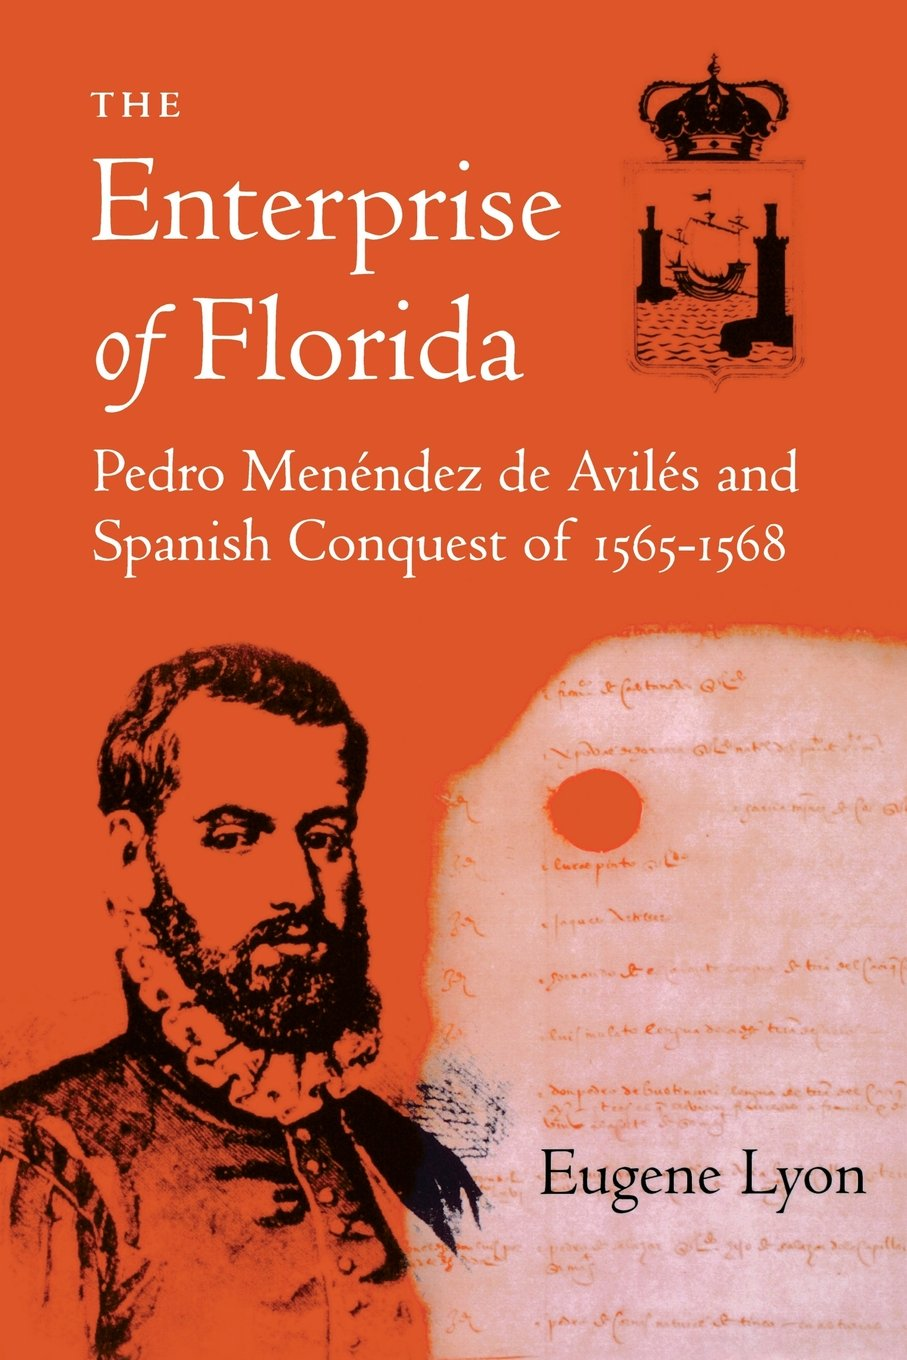 the enterprise of florida pedro menendez de aviles and the